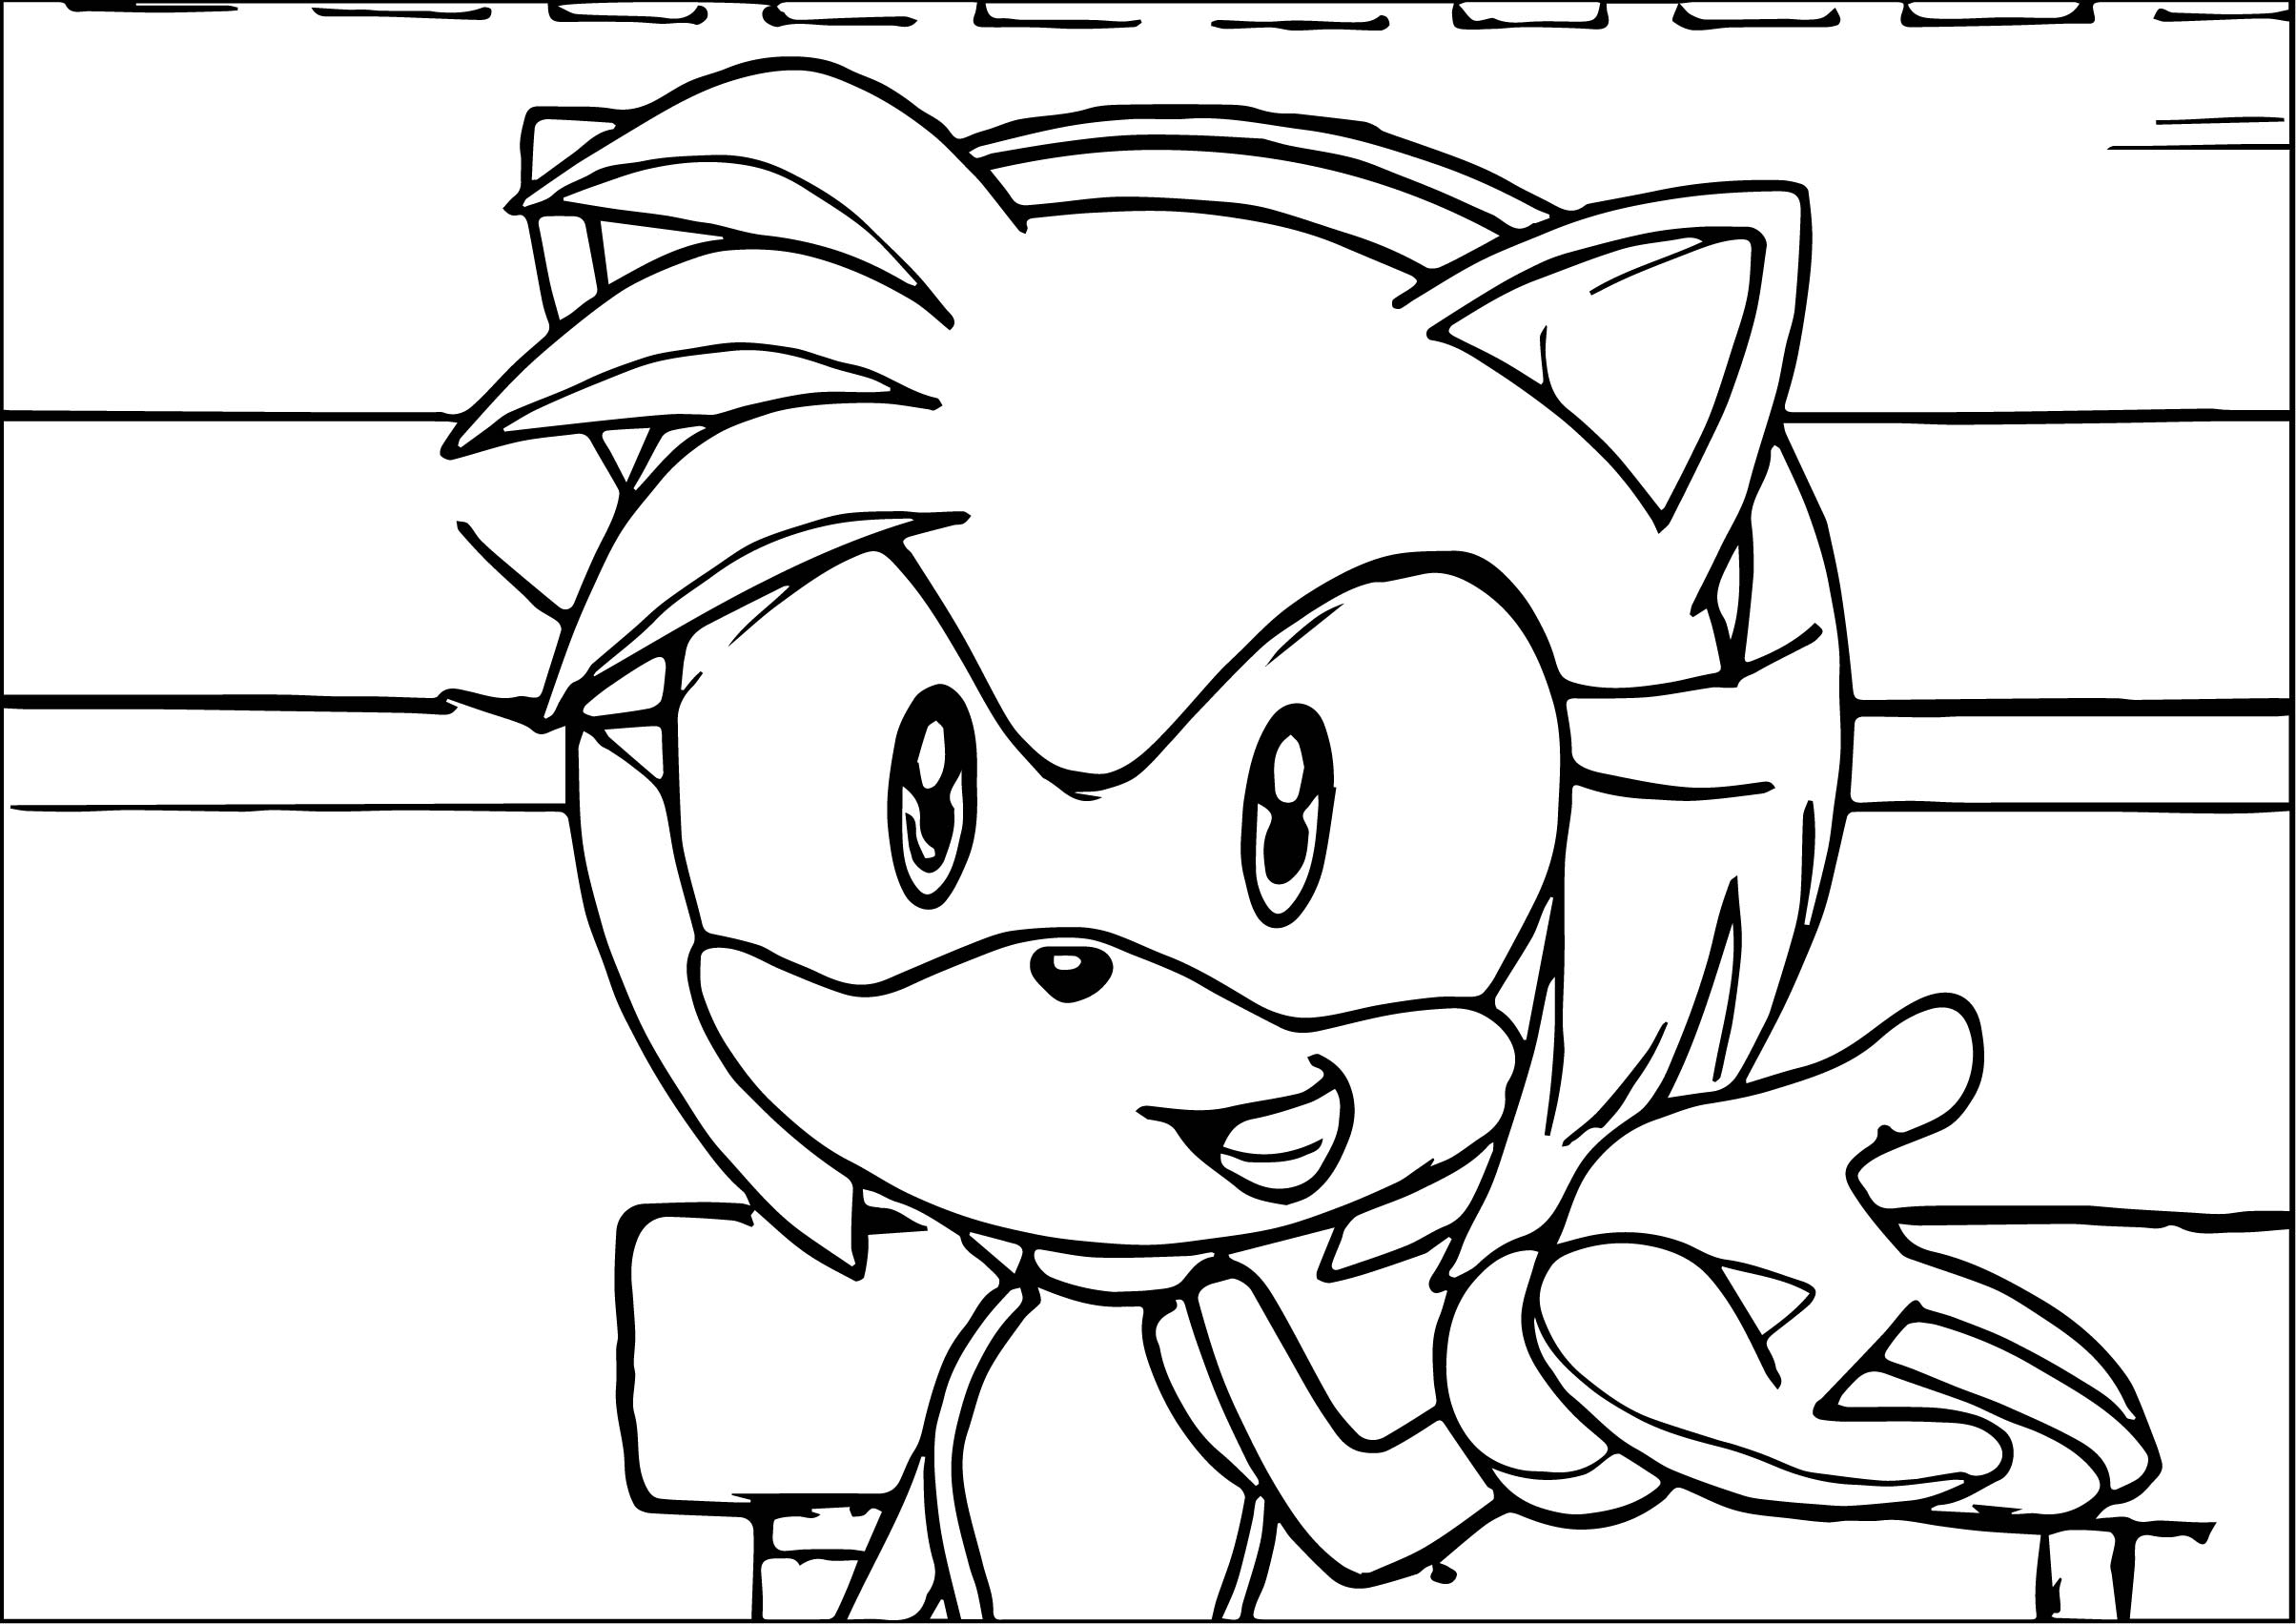 Amy Rose Hi Coloring Page